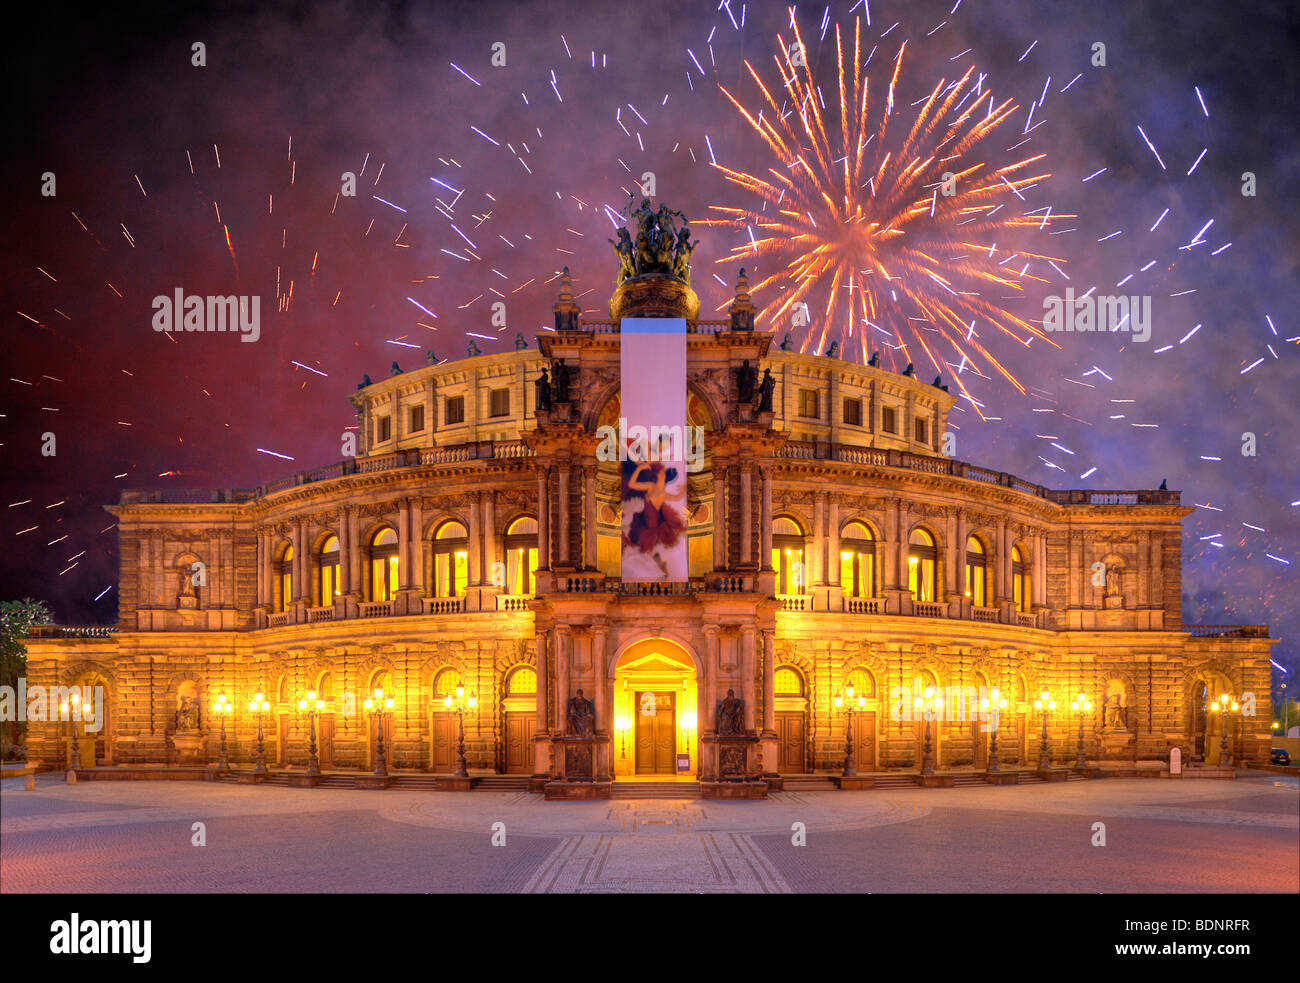 Semperoper opera, with banners, at Theaterplatz square, fireworks, Dresden, Saxony, Germany, Europe - Stock Image